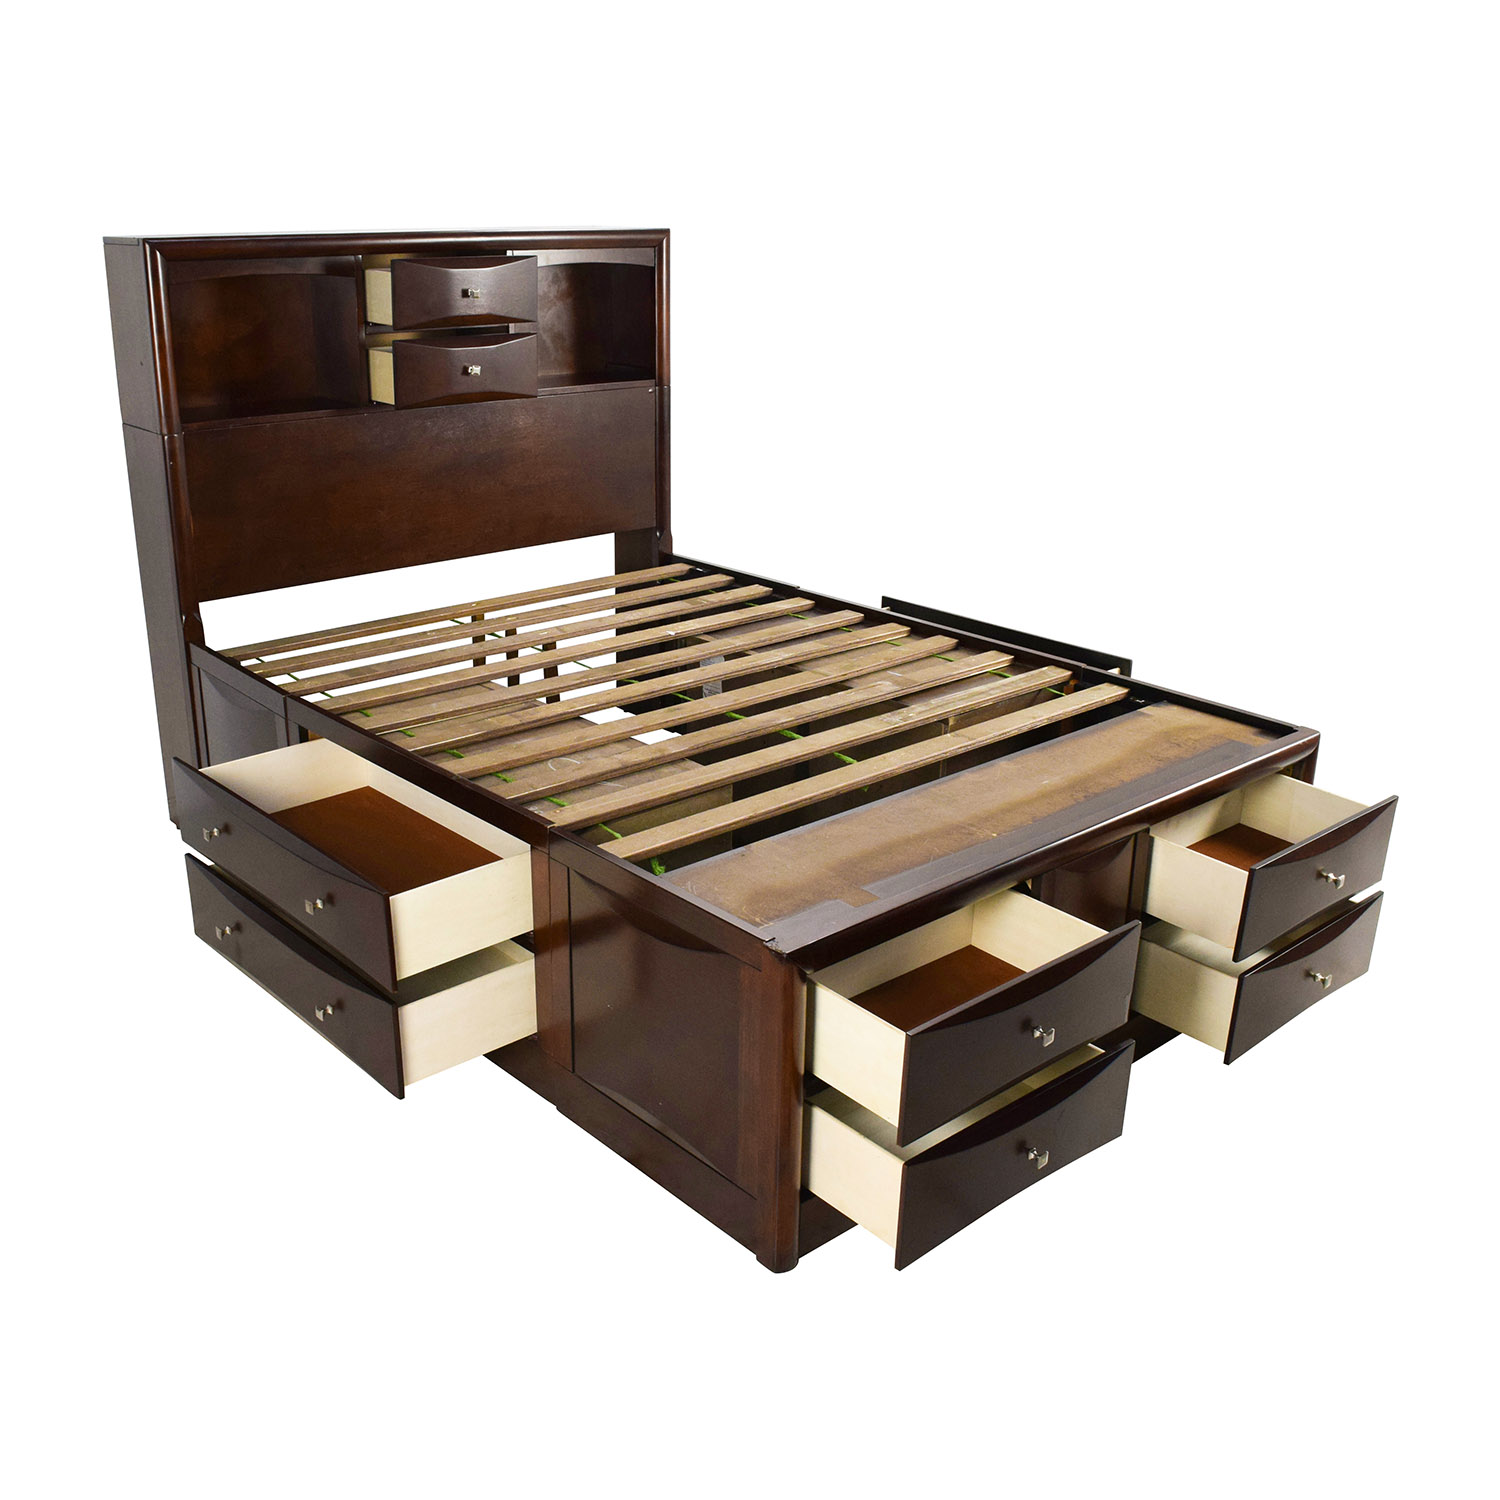 56 off roundhill furniture roundhill furniture emily for Second hand bunk beds